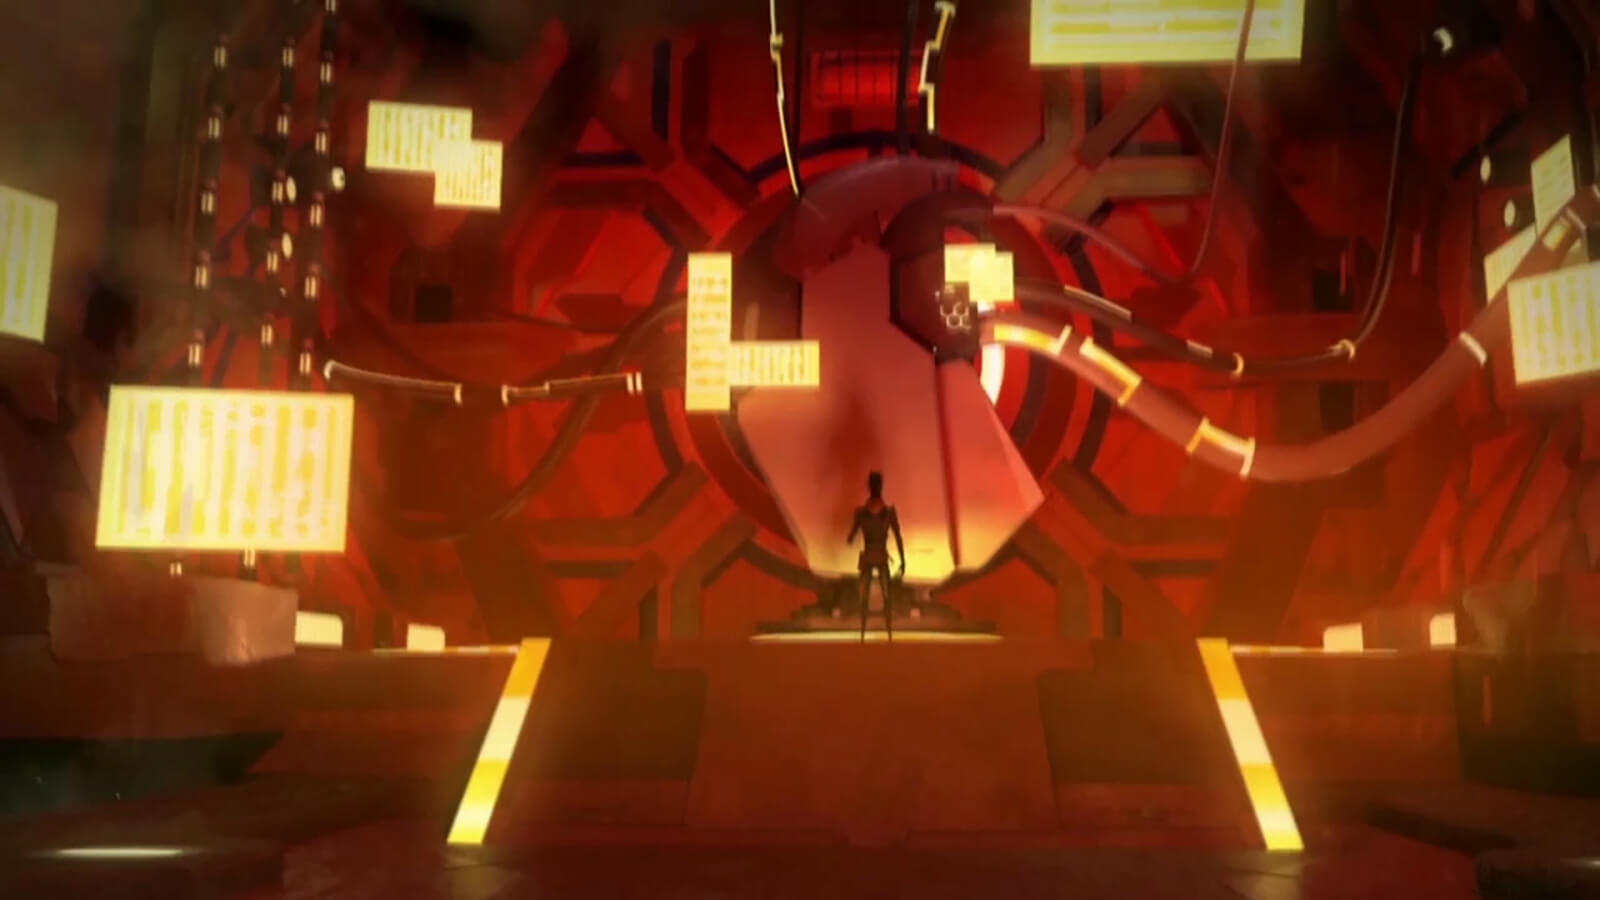 A man stands before a large machine connected to the wall by tubes. The room is tinged by red light and yellow accents.